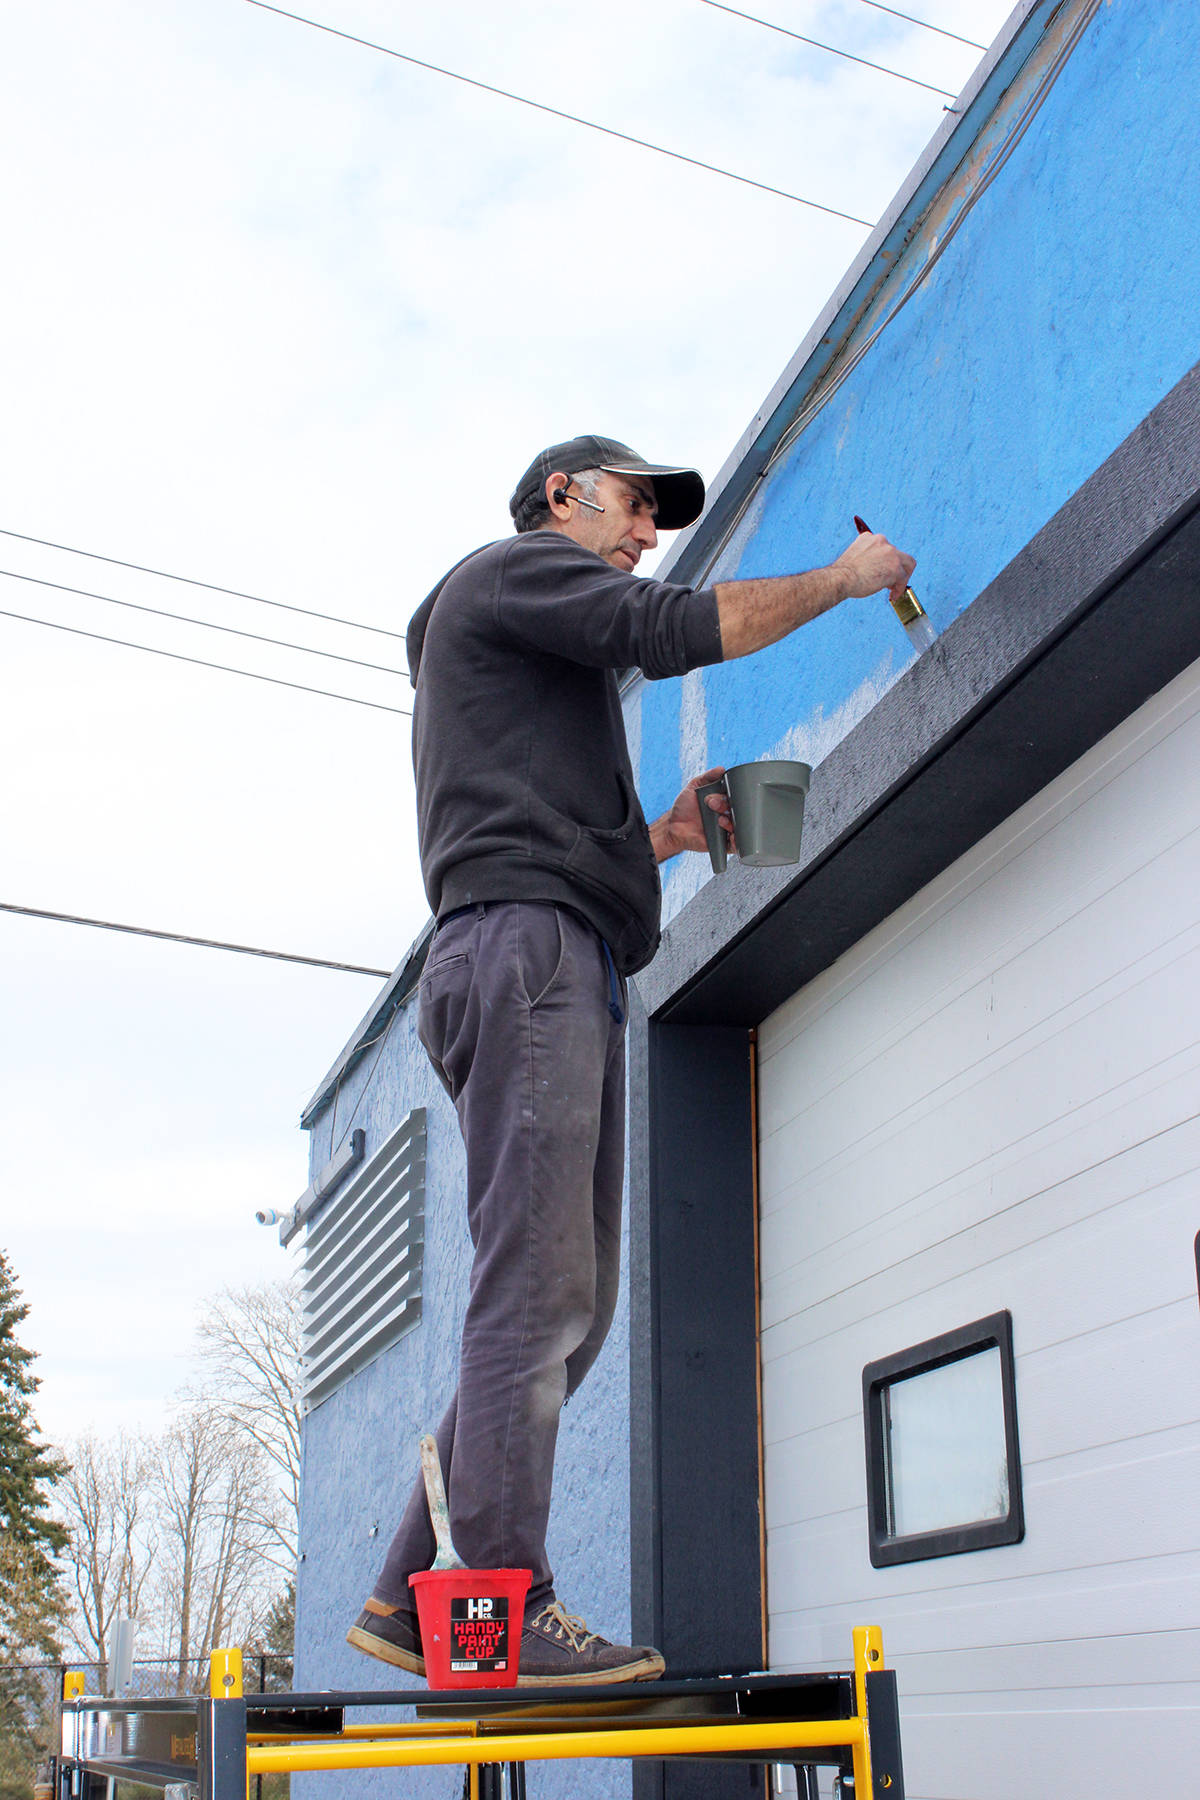 The much-maligned blue building on Chemainus Road is getting a paint job. Building owner Blake Sam is working on converting it to an Oxford grey colour with Benjamin Moore point. (Photo by Don Bodger)